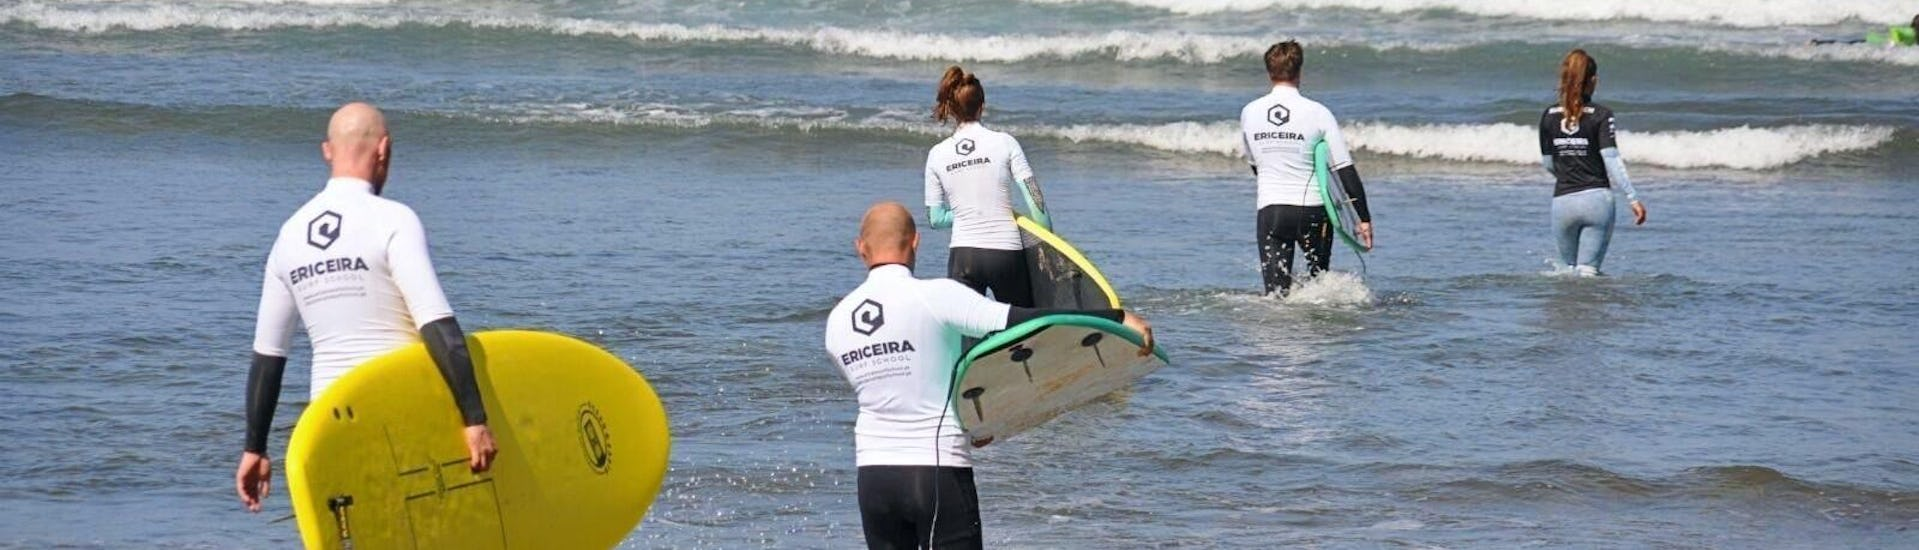 surfing-lessons-for-beginners-ericeira-surf-school